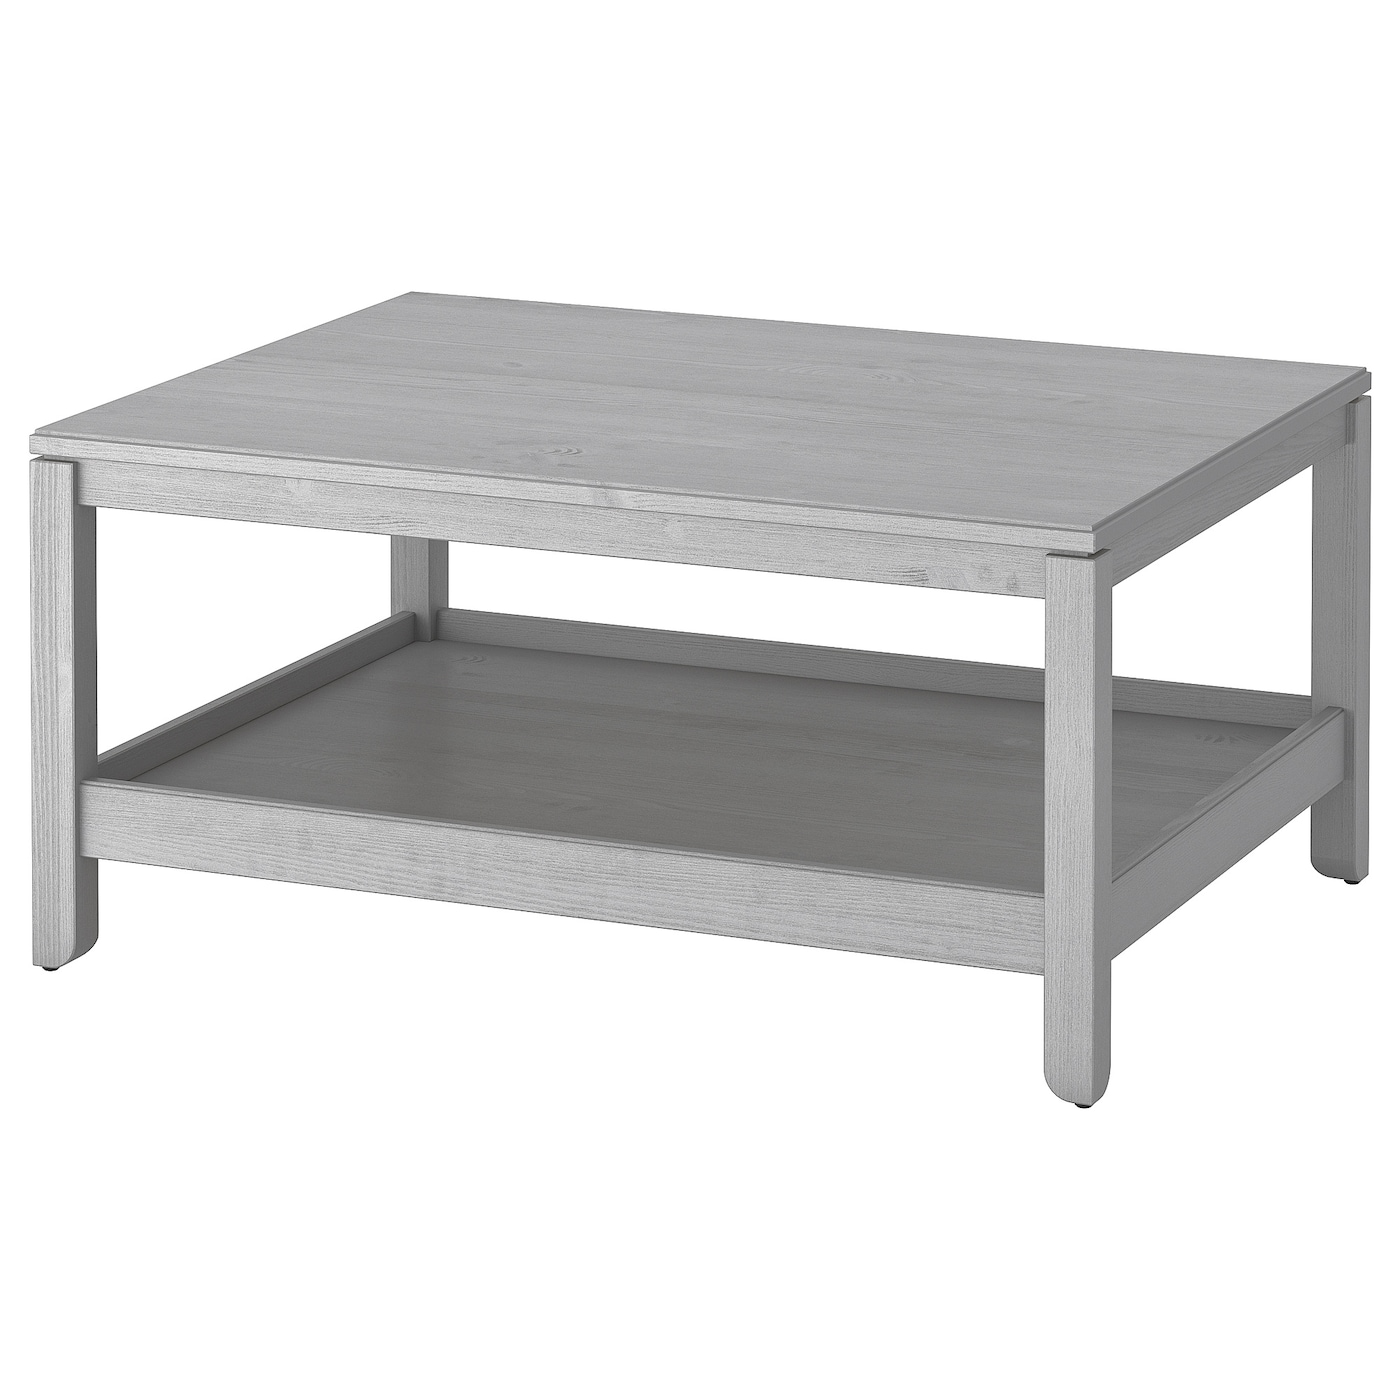 Havsta Coffee Table Grey 100x75 Cm Ikea